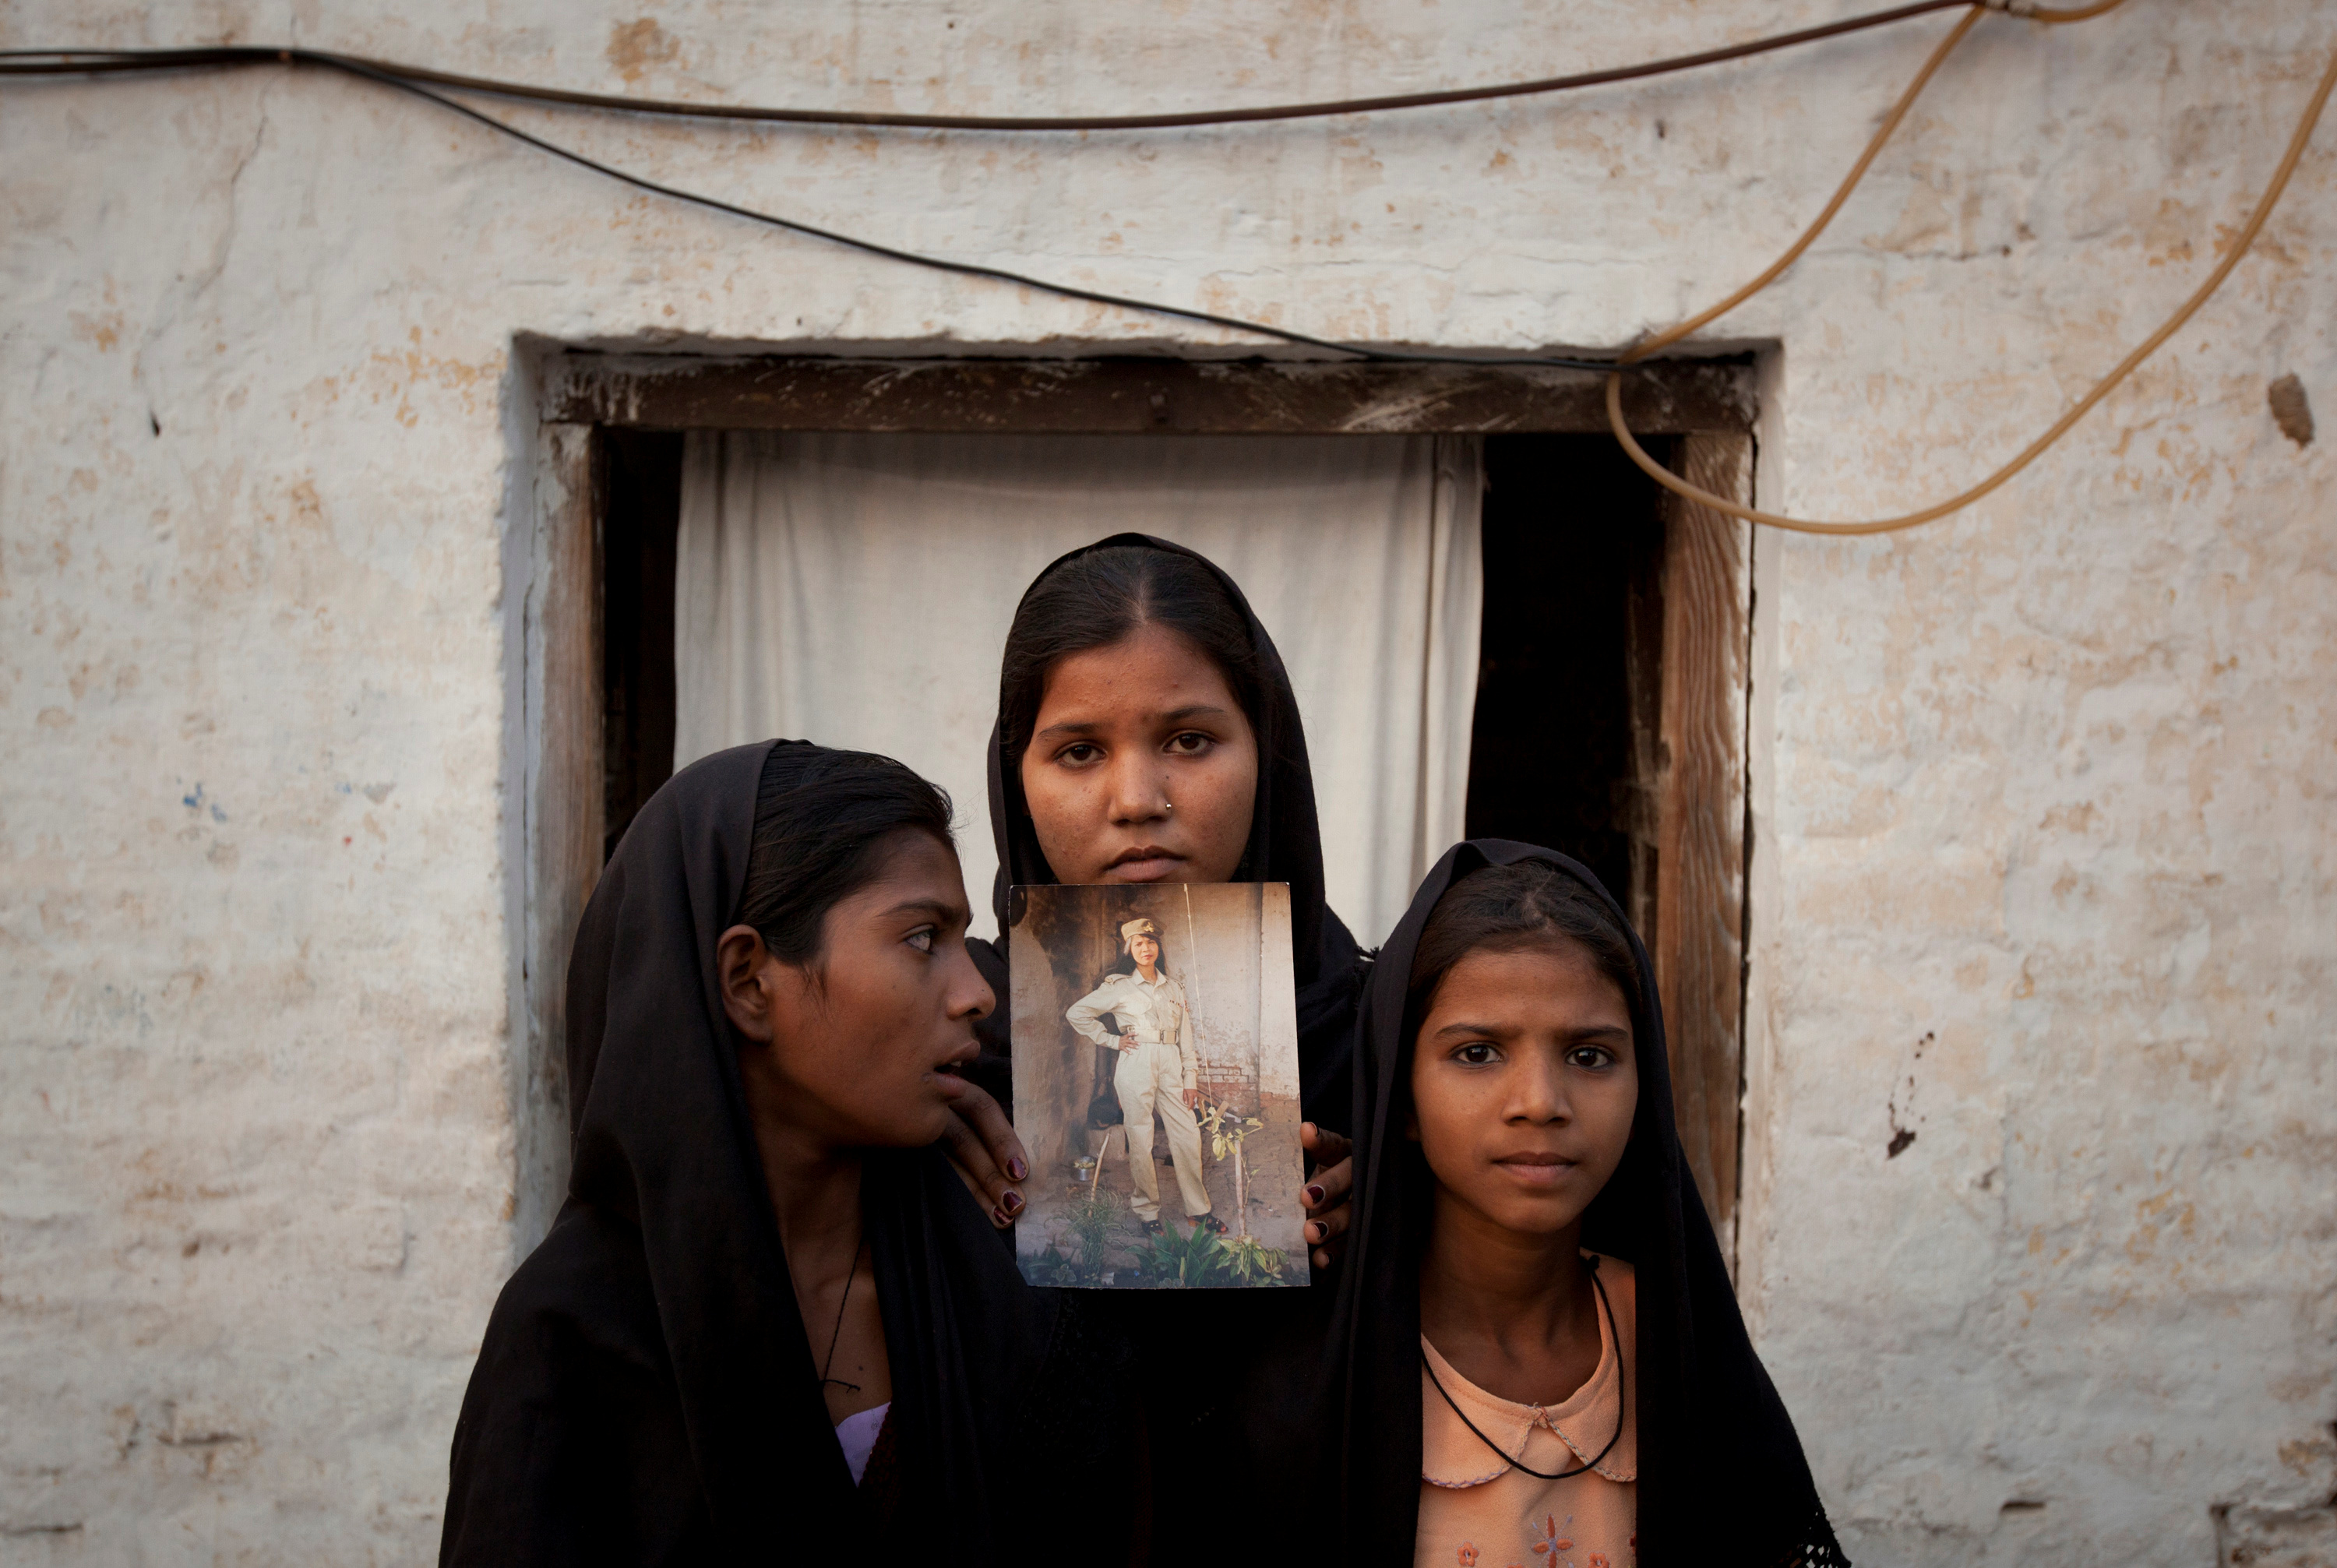 The daughters of Pakistani Christian woman Asia Bibi pose with an image of their mother while standing outside their residence in Sheikhupura located in Pakistan's Punjab Province, November 13, 2010. Standing left to right is Esha, 12, Sidra, 18 and Eshum, 10. REUTERS/Adrees Latif/File Photo